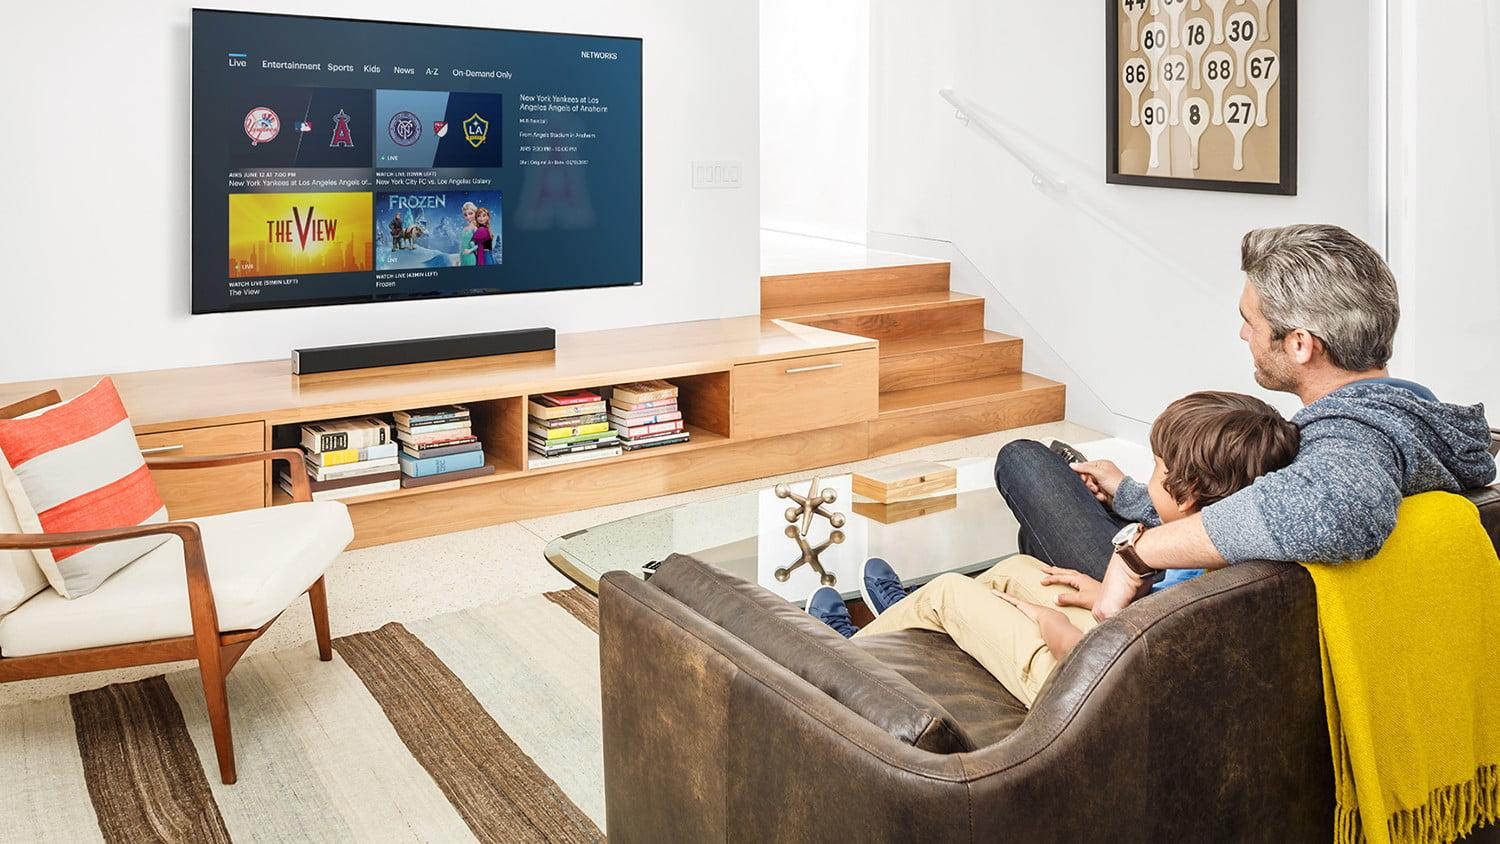 How does Hulu work? Pricing, plans, channels, and how to get it